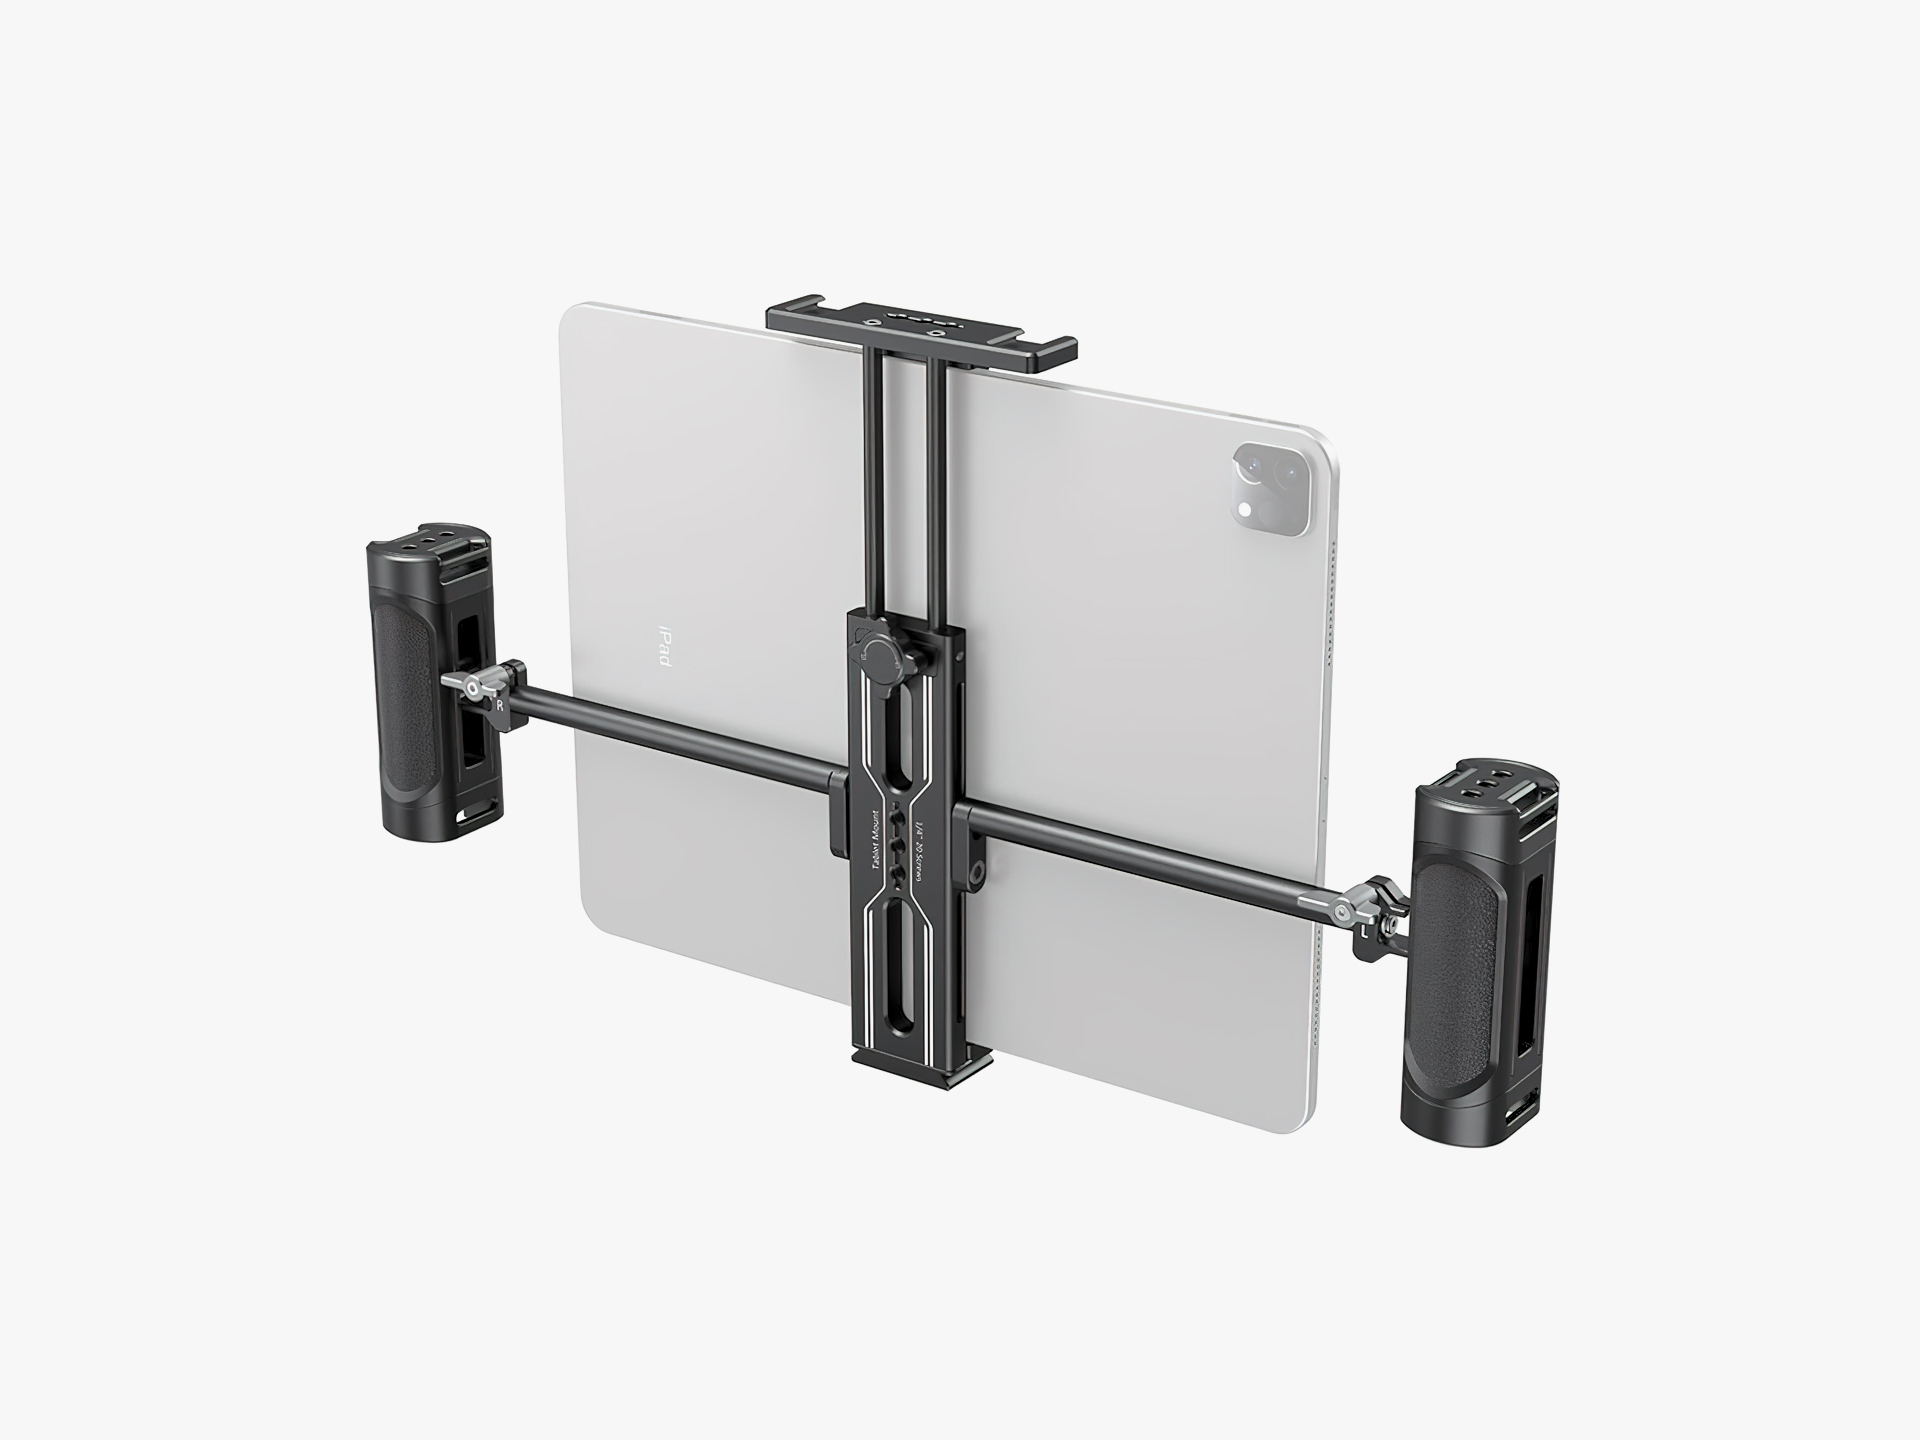 SmallRig Tablet Mount with Dual Handgrips for iPad/Tablet